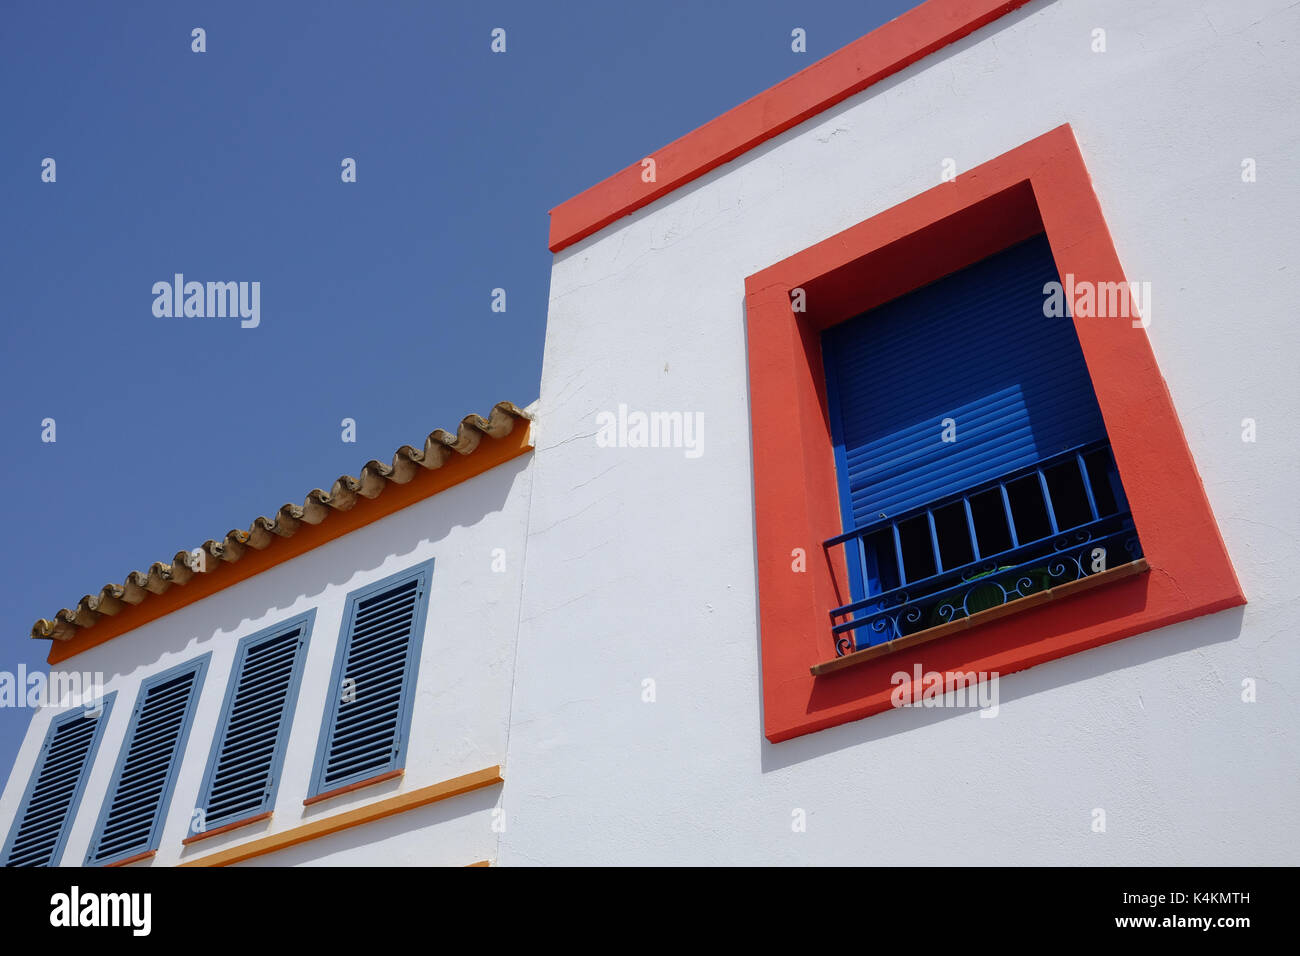 detail of a traditional house in Isla del Moral, Spain - Stock Image